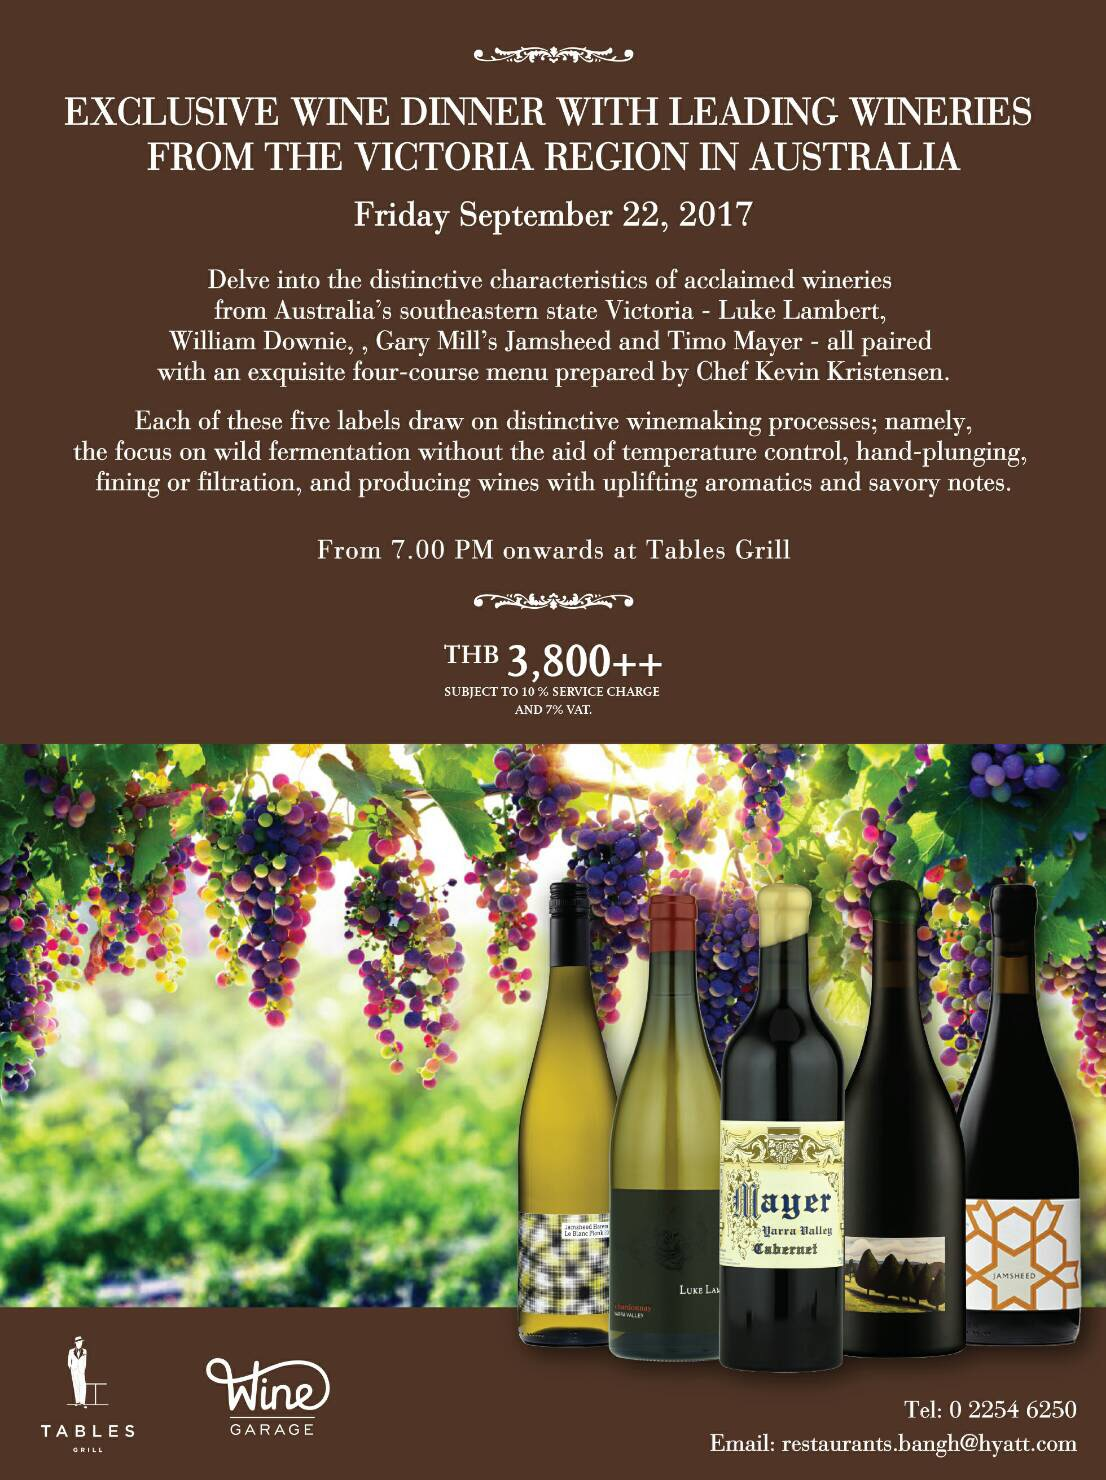 WG Grand Hyatt Tables Wine Dinner Sep 22 2017